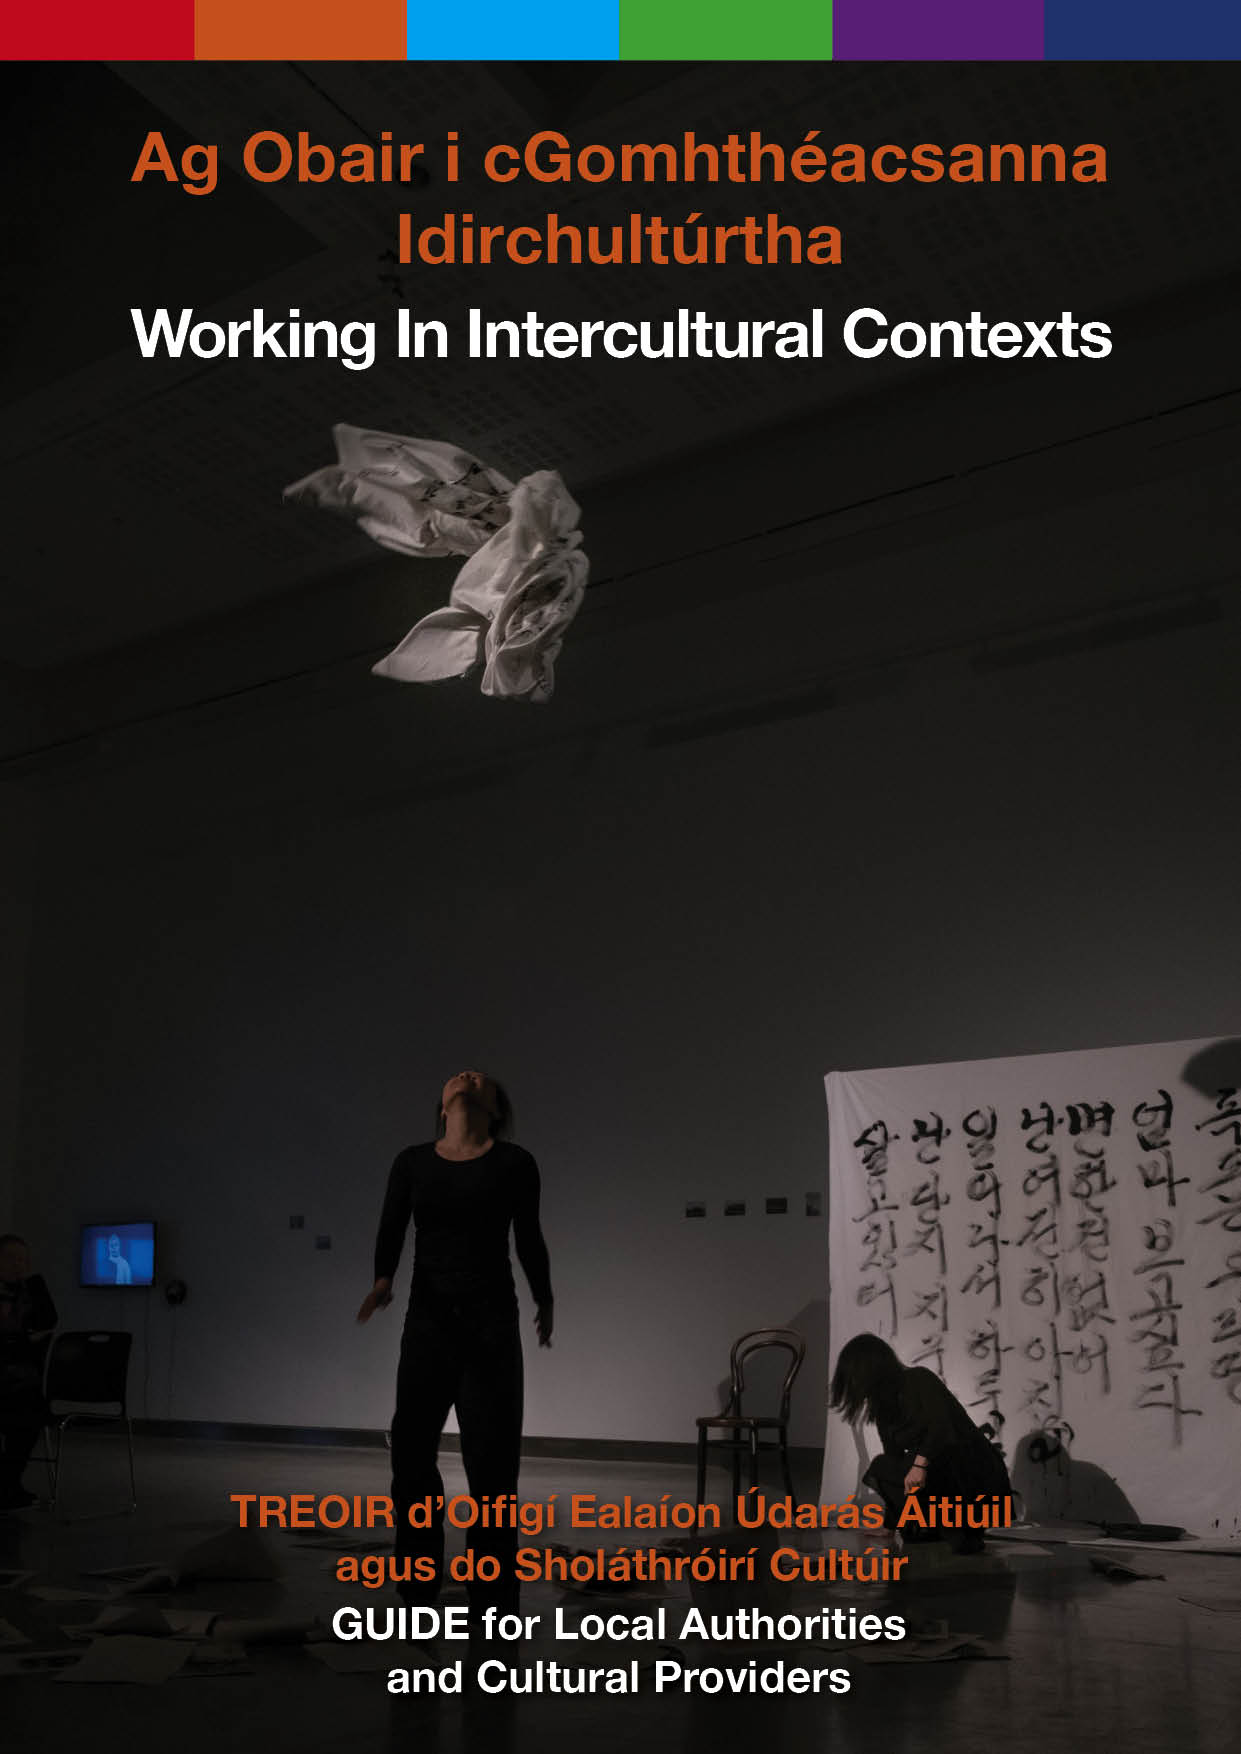 Working in Intercultural Contexts Guide